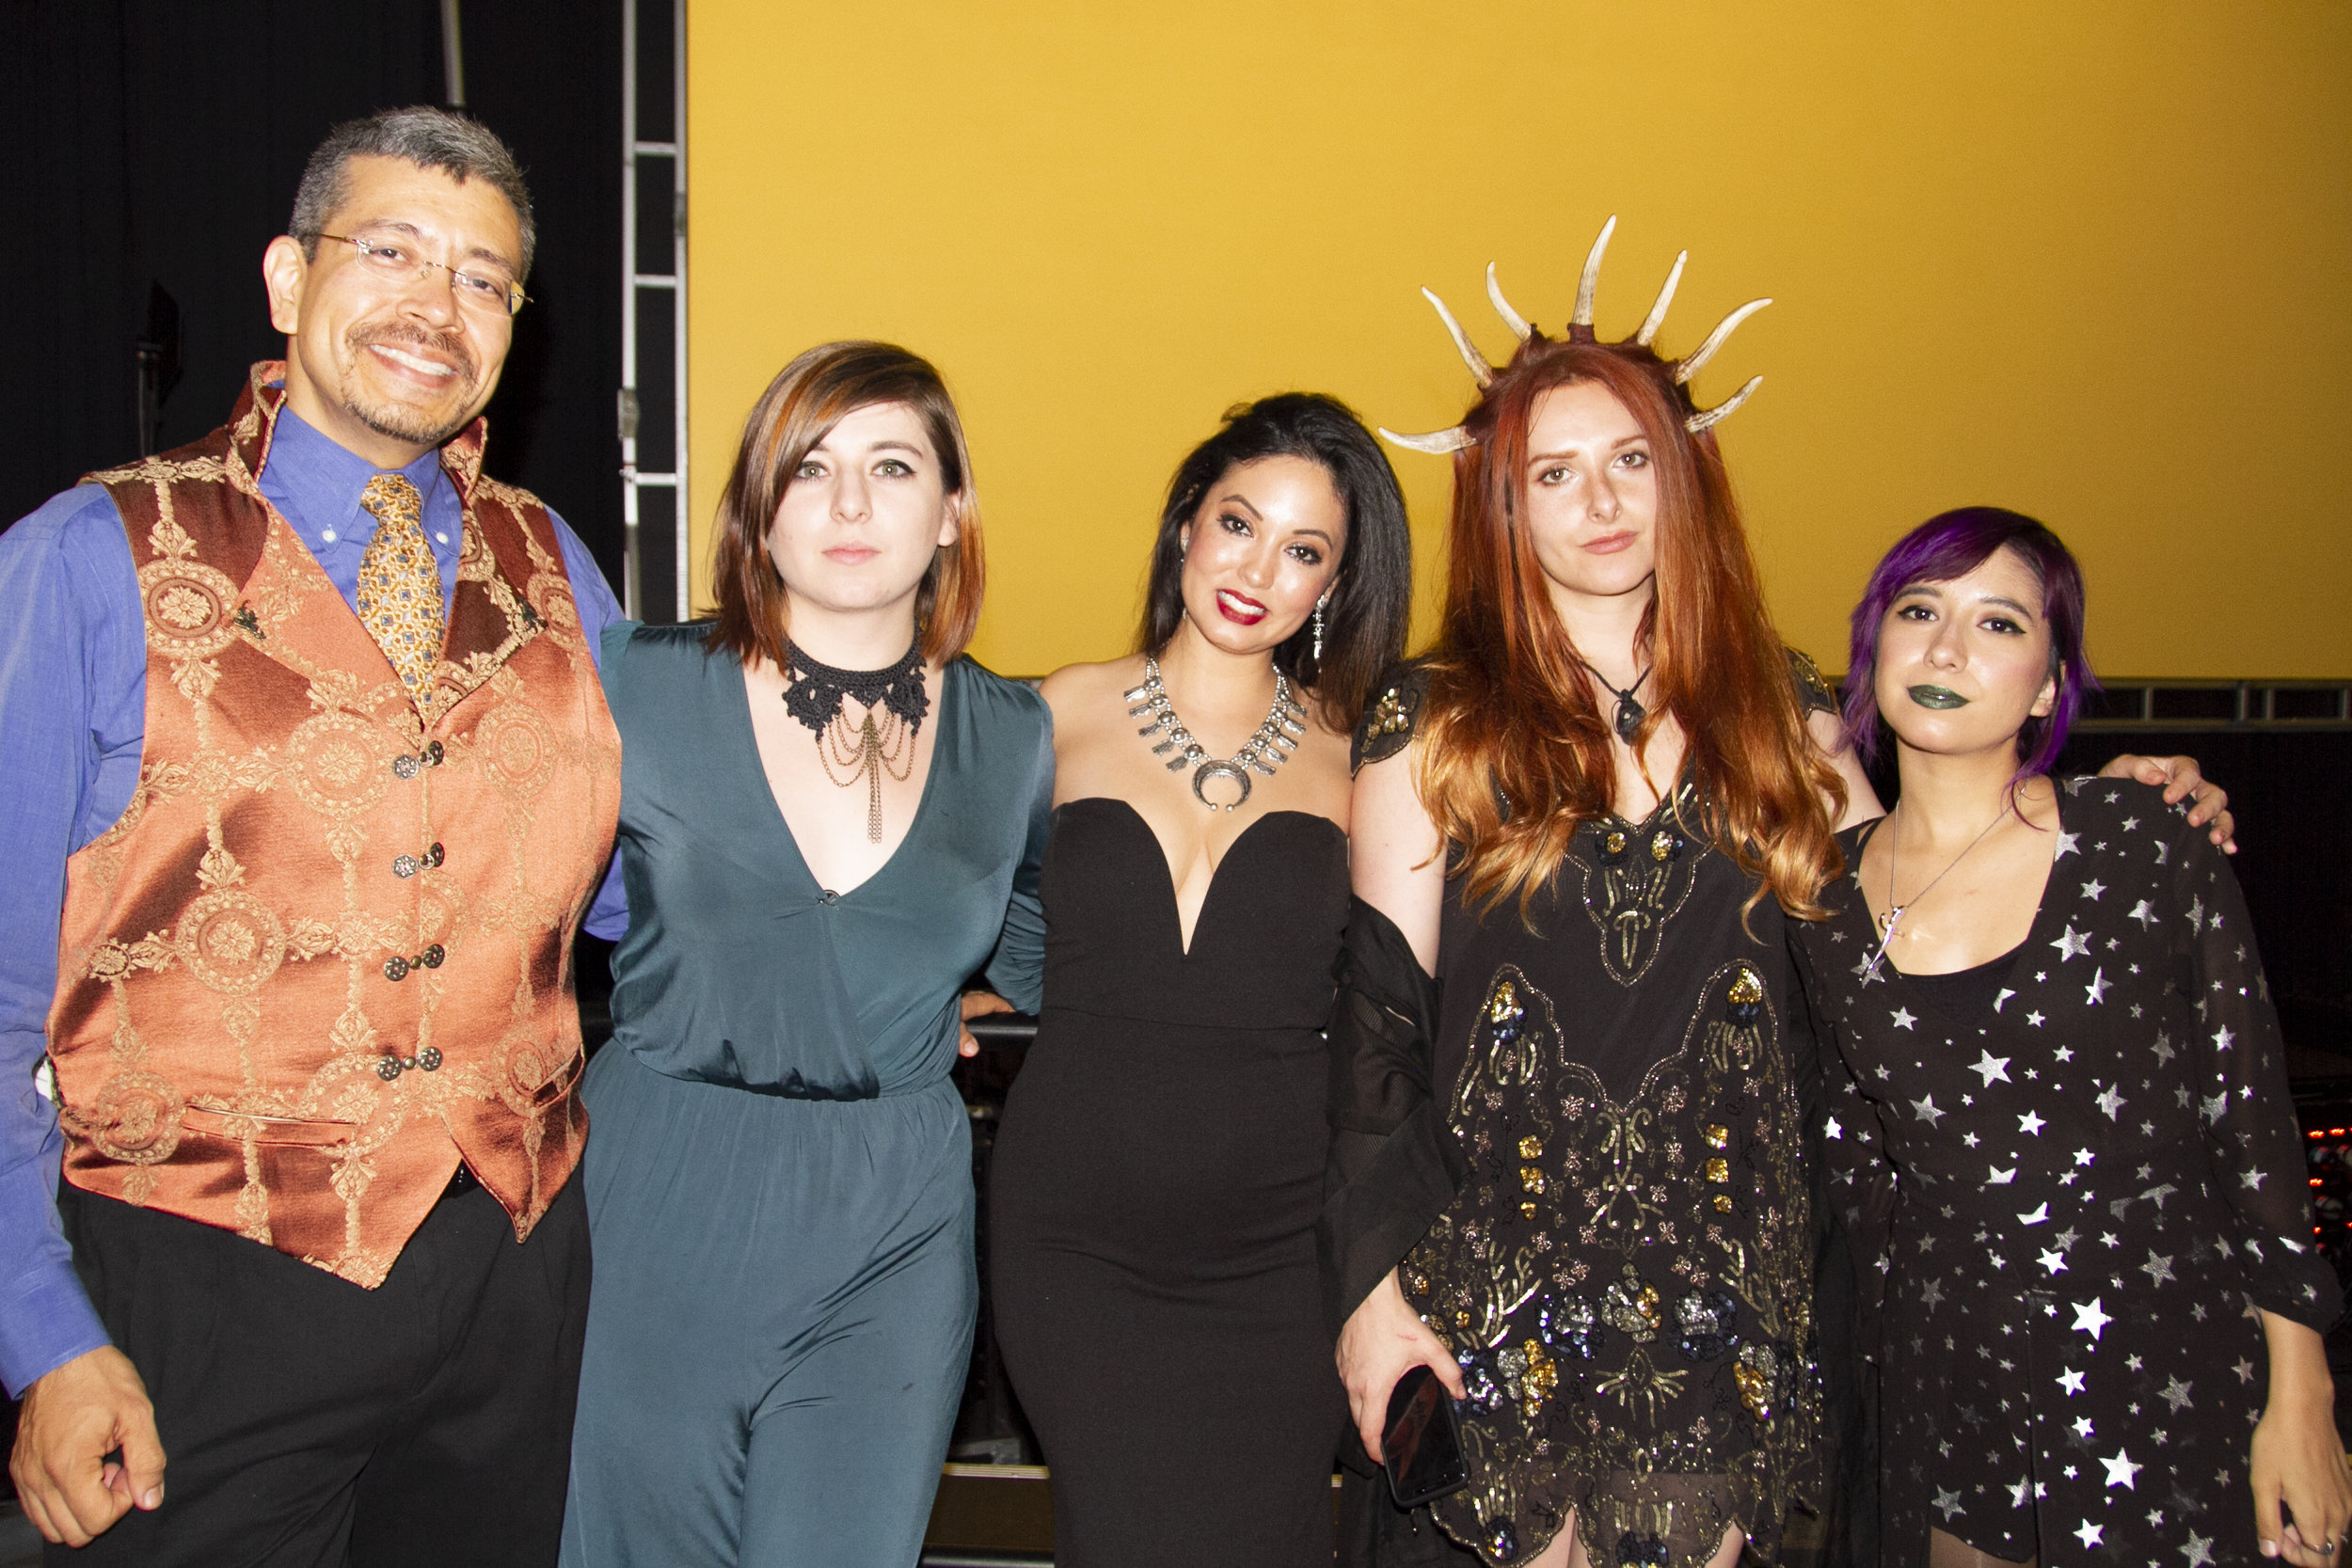 Héctor González, Mariana Palova, Vania Soto, Tehani Farr, and Smok dressed up for the Hugo Awards